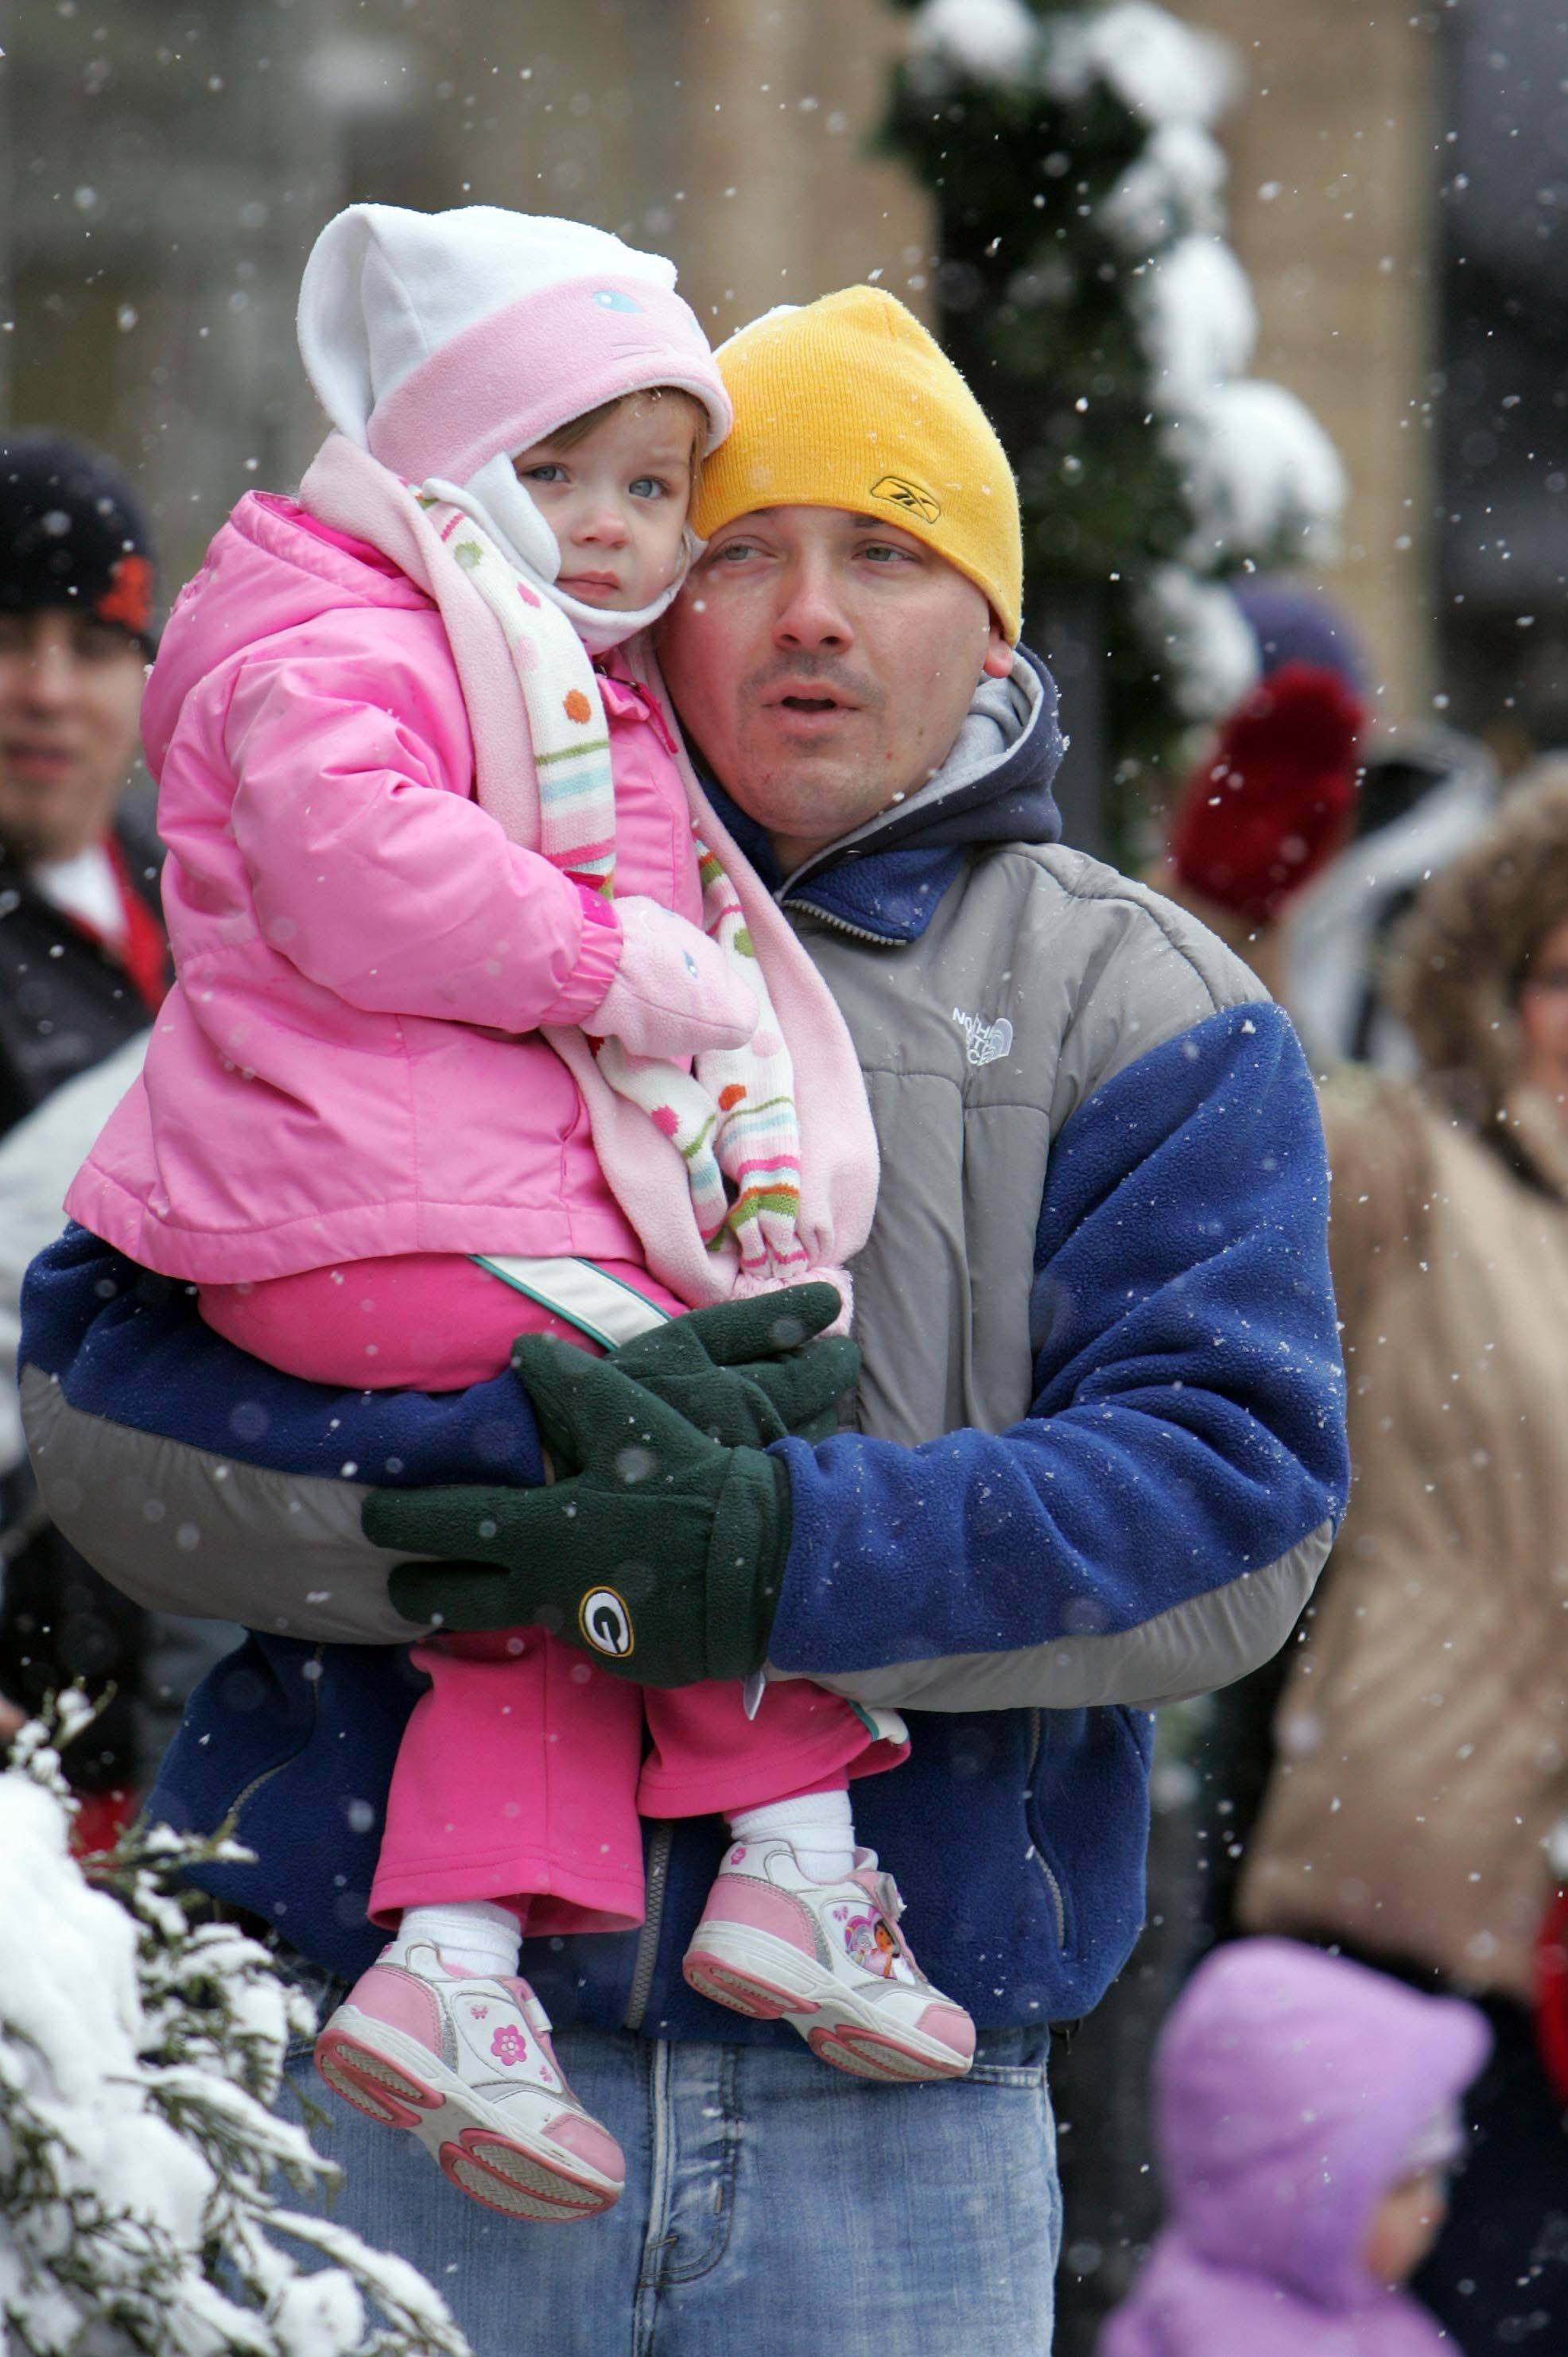 Brian Rohrbacher of Elgin holds his three-year-old daughter Aubrie during the Spirit of Christmas Parade in West Dundee Saturday, December 4, 2010.